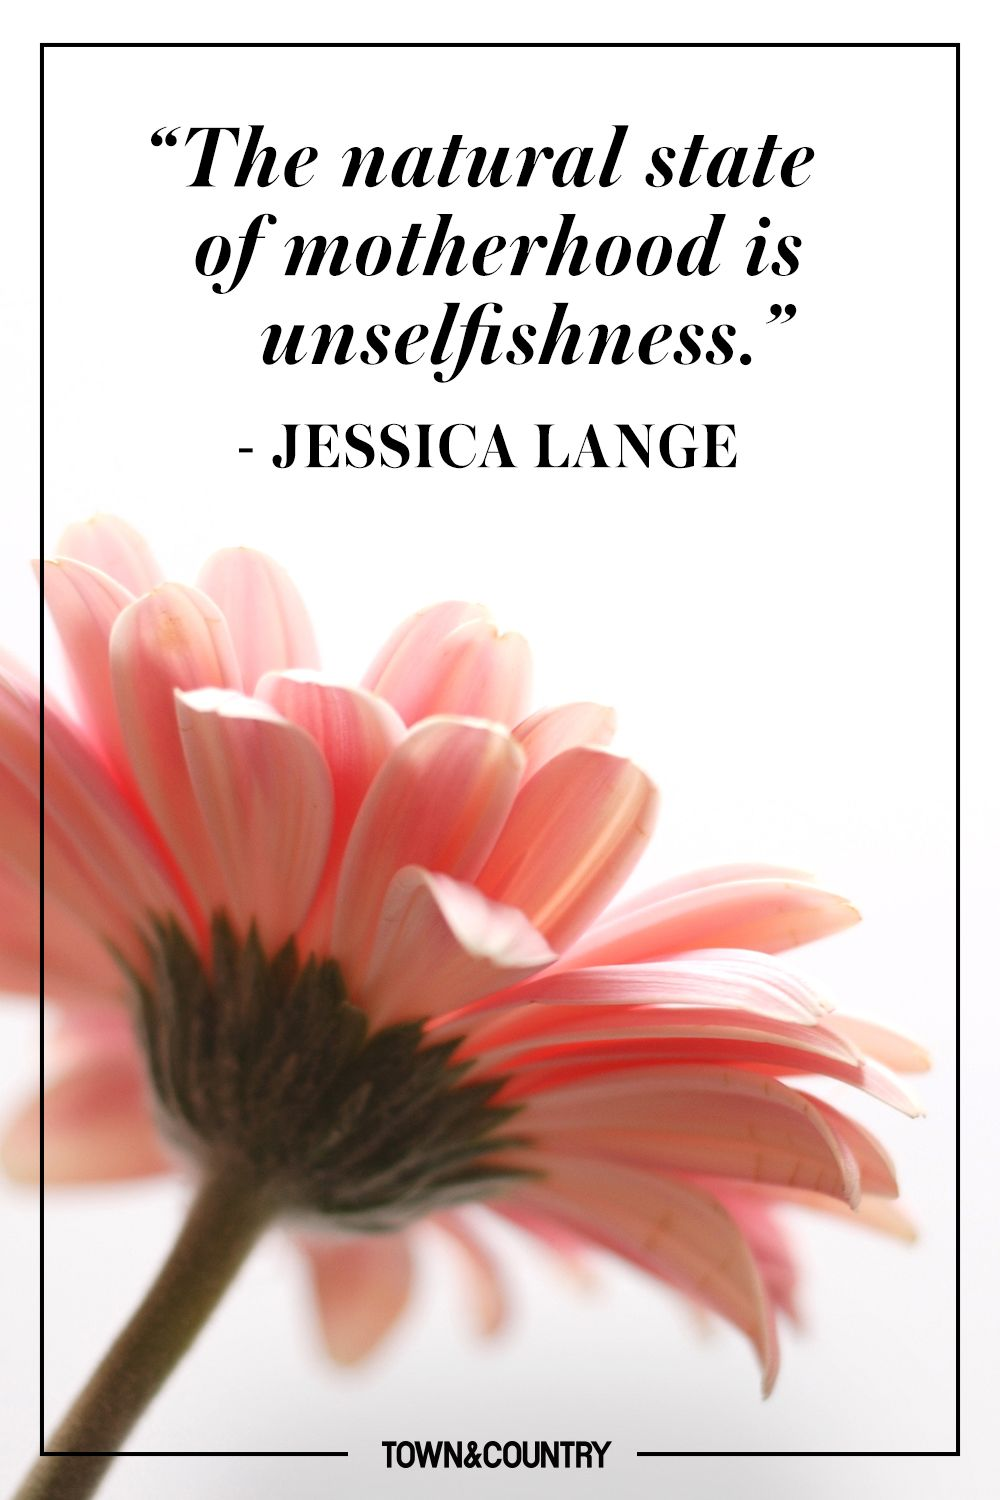 """""""The natural state of motherhood is unselfishness."""" - Jessica Lange"""